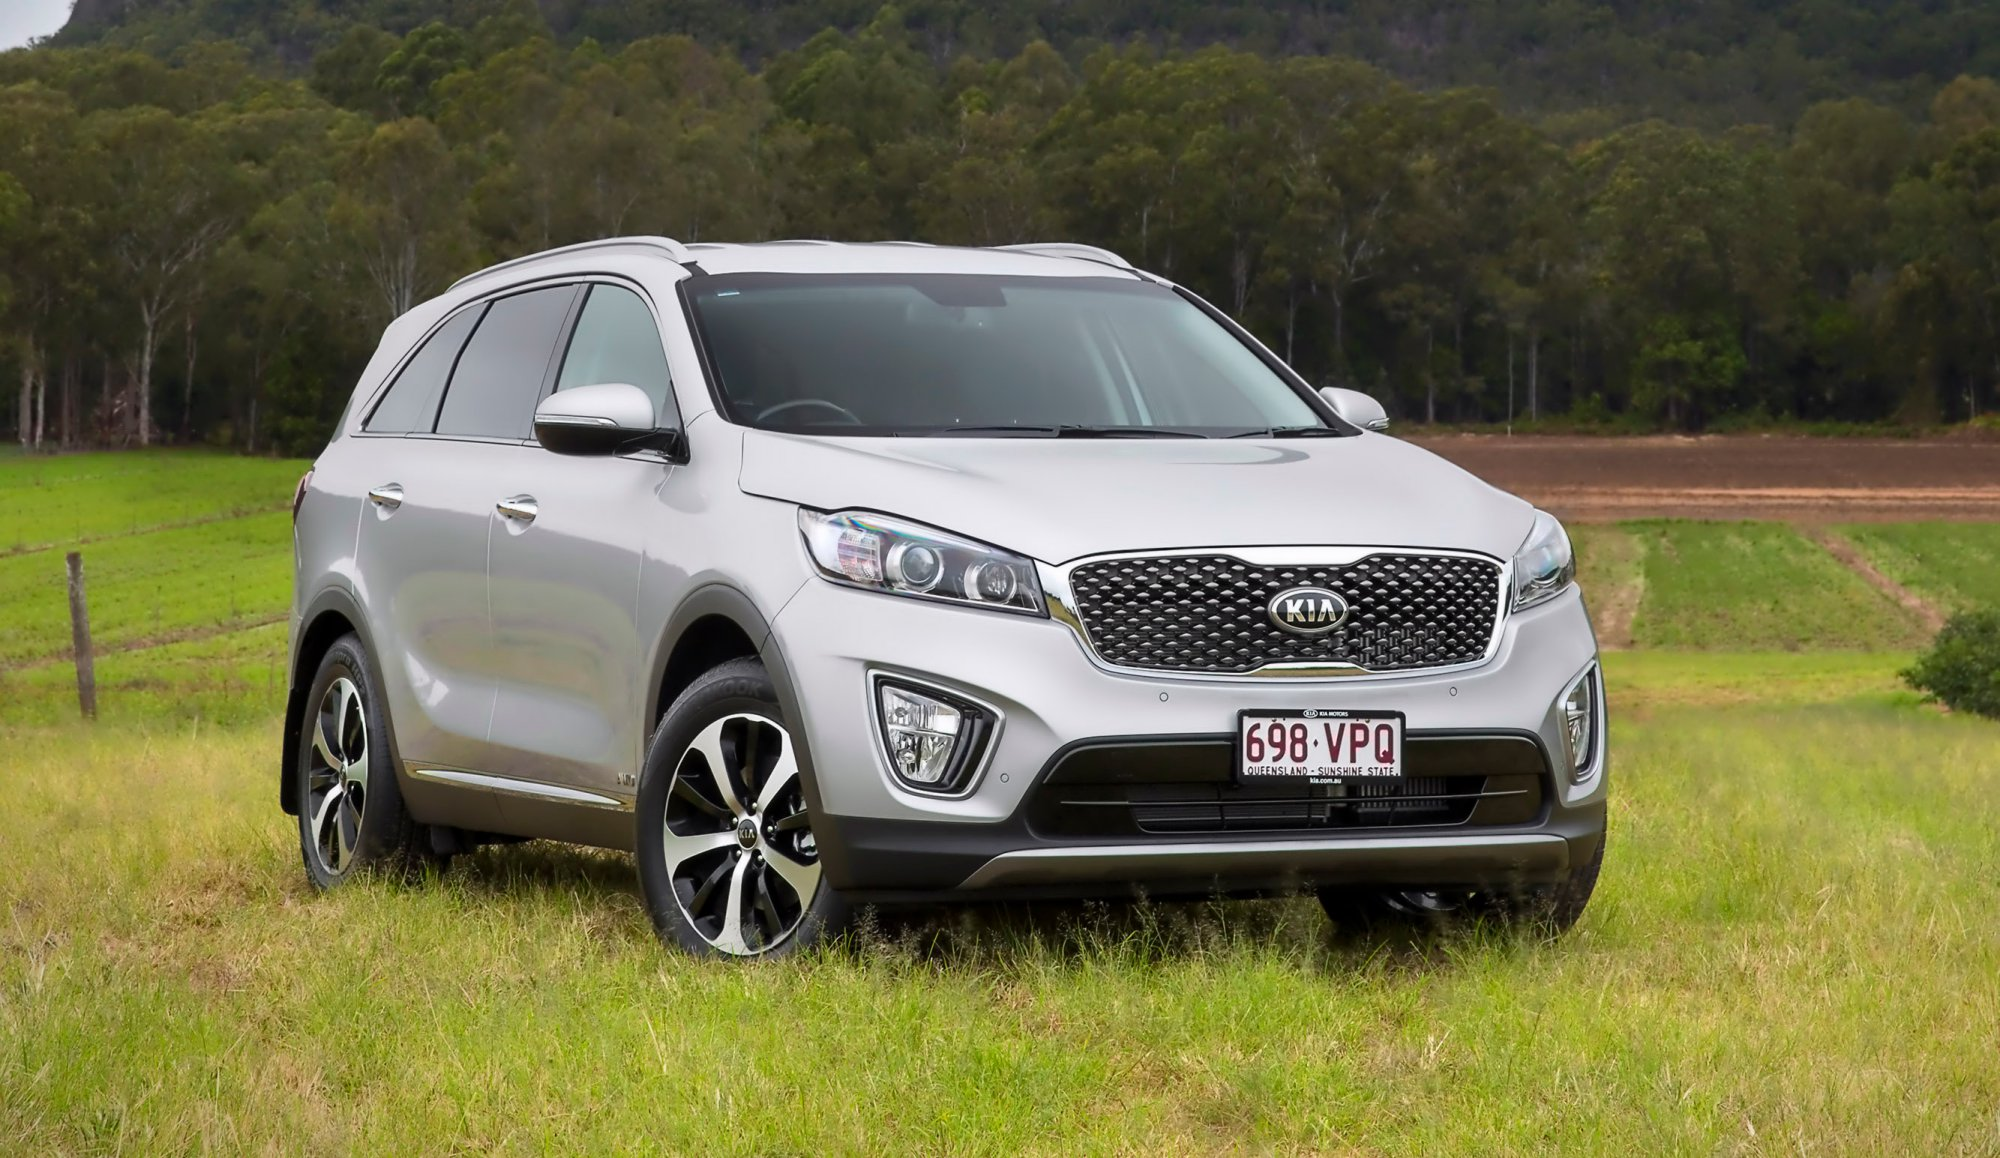 Review - 2017 Kia Sorento - Review